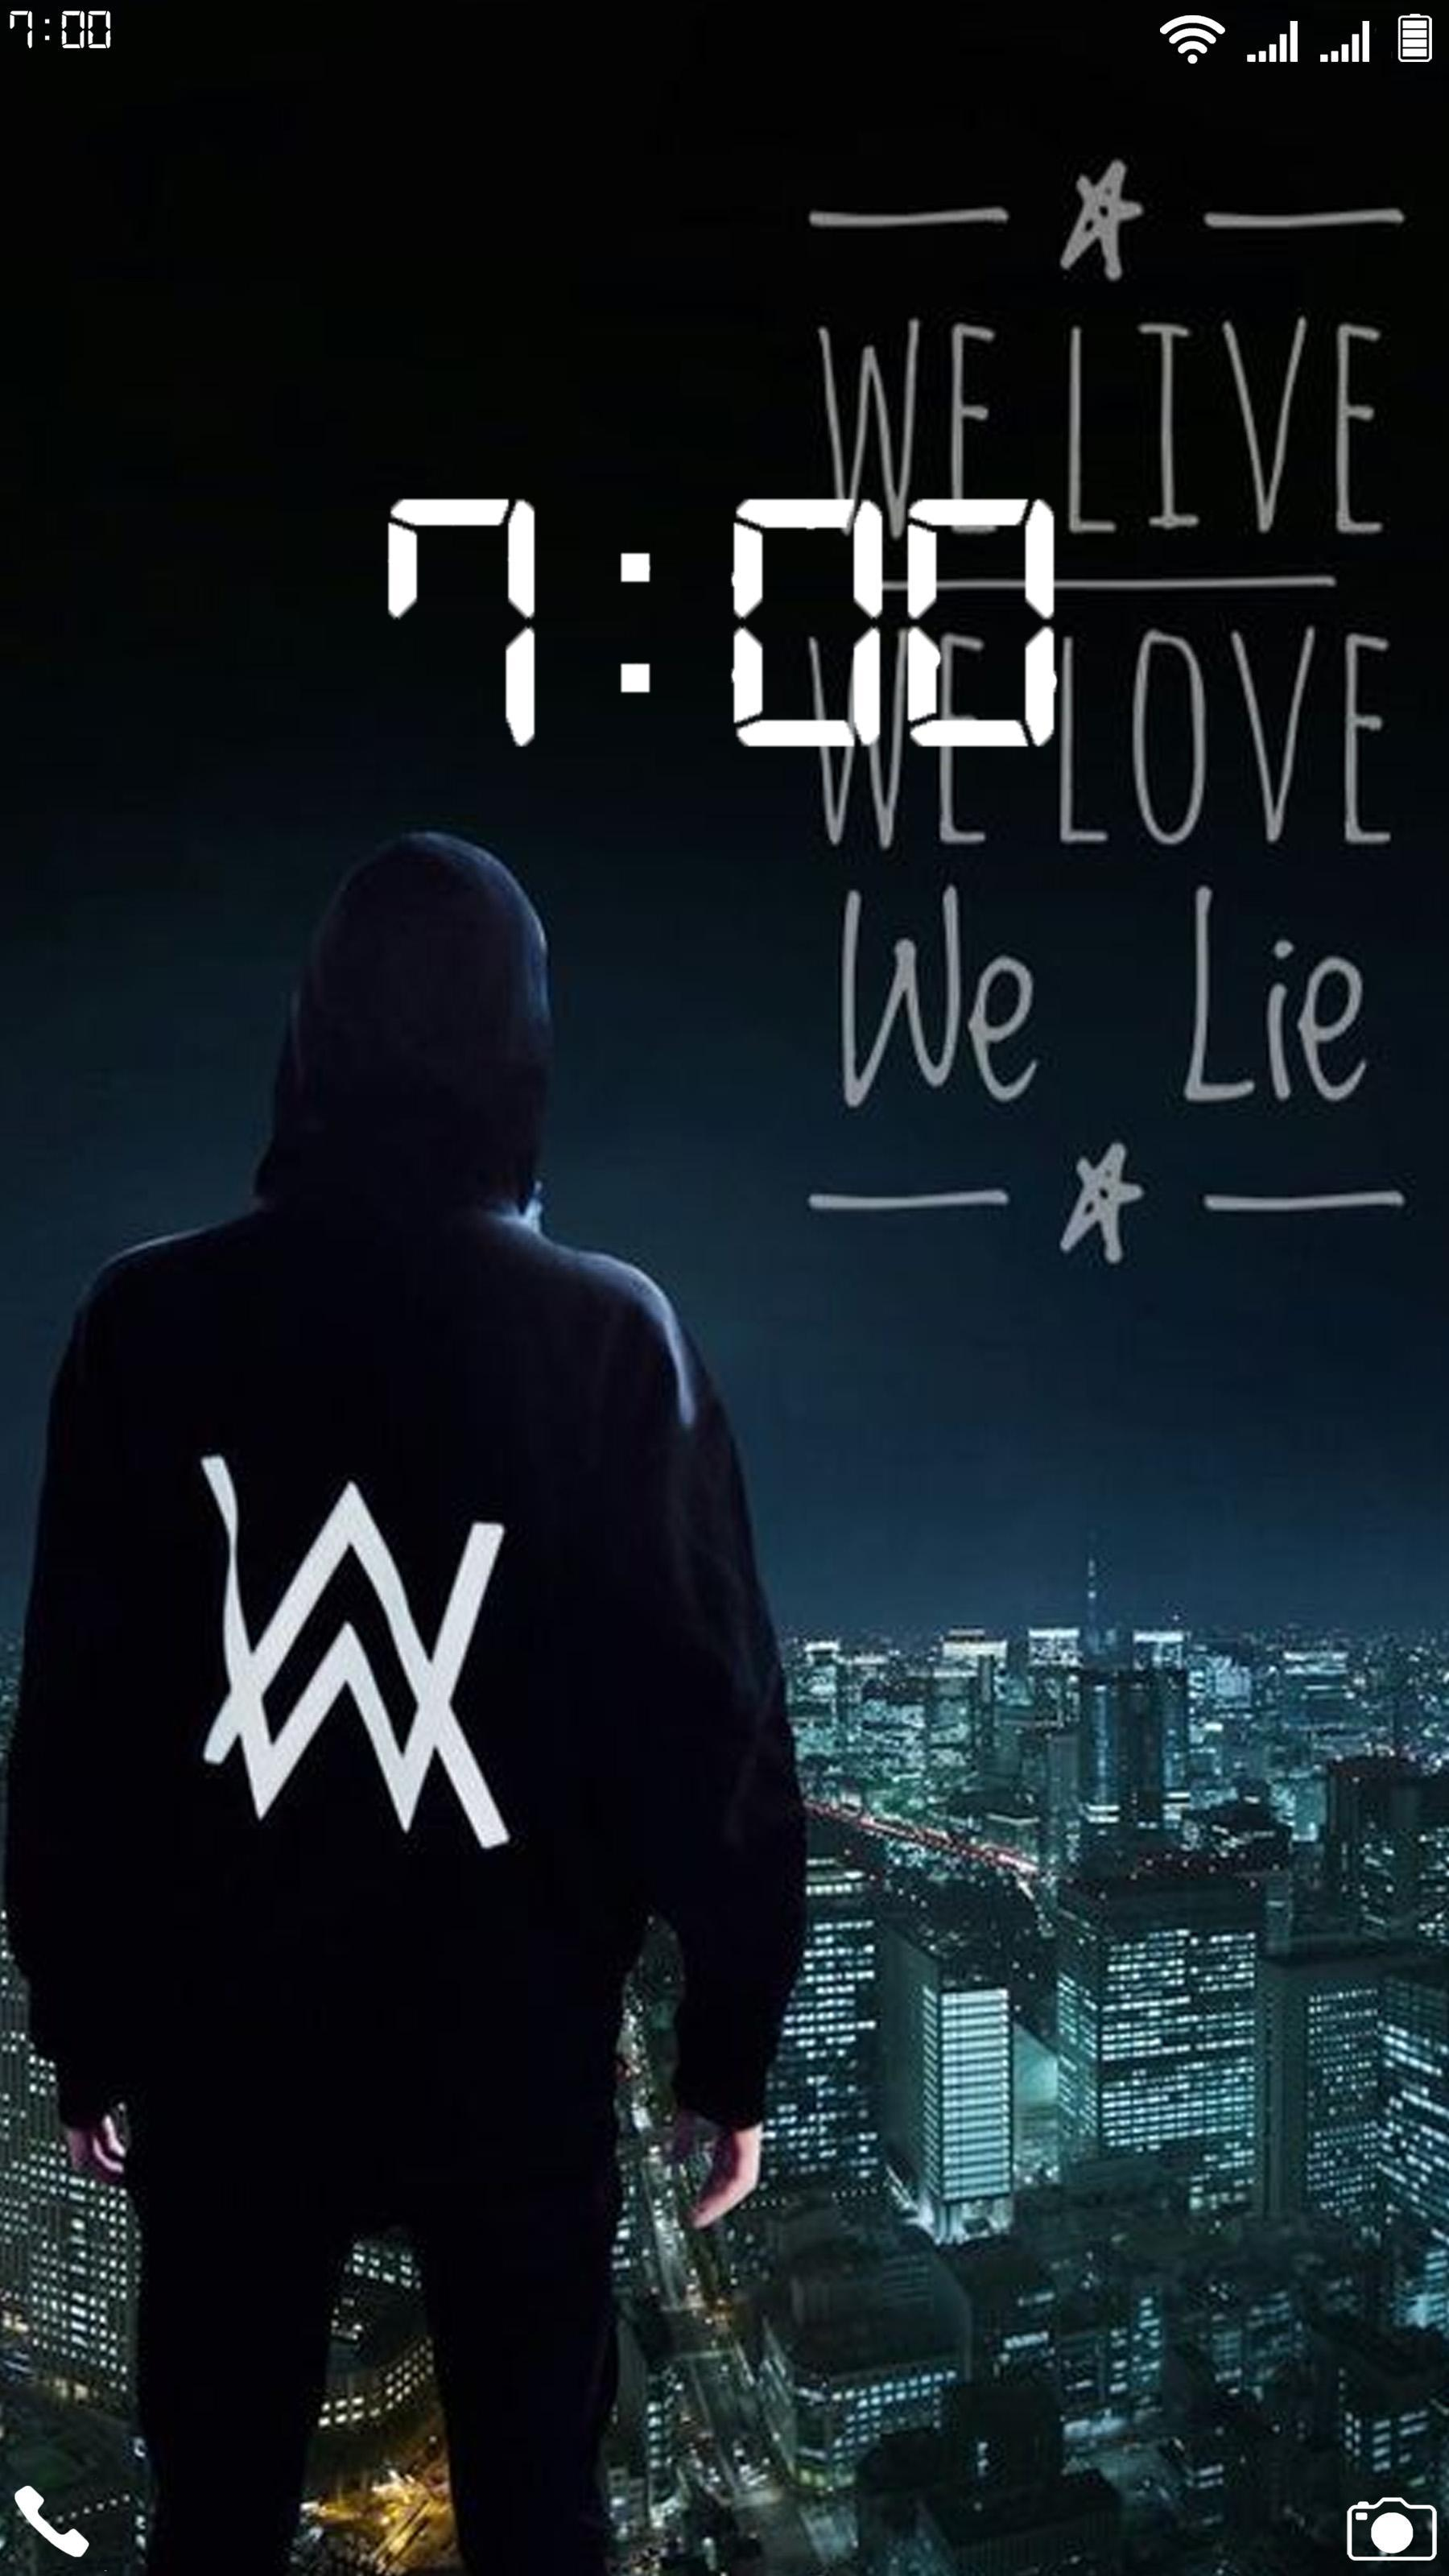 Alan Walker Wallpapers Art 2019 For Android Apk Download